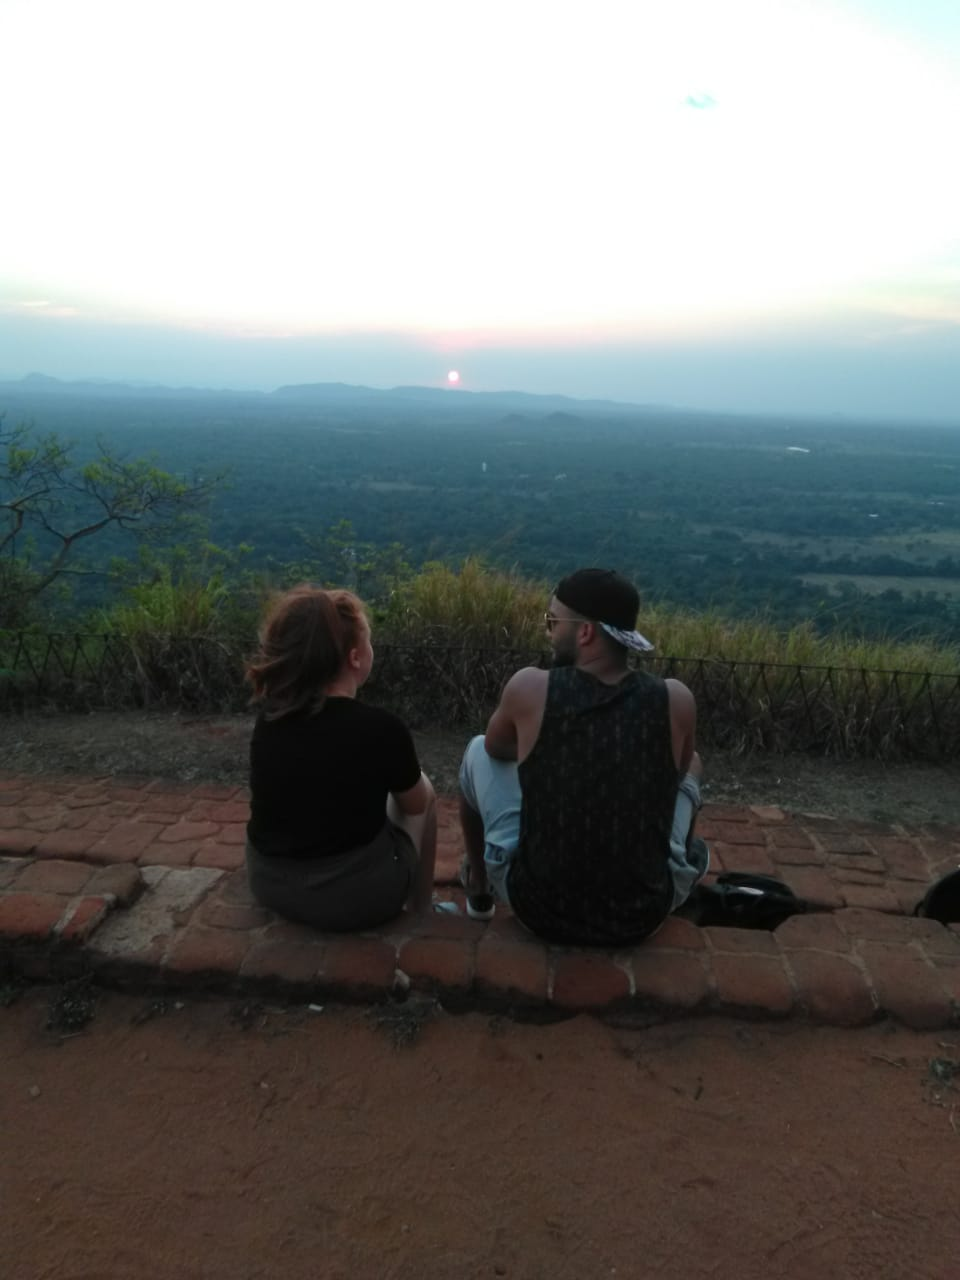 invite-to-paradise-sri-lanka-holiday-honeymoon-specialists-customer-feedback-elin-jordan-luce-sigiriya-sunset-1.JPG